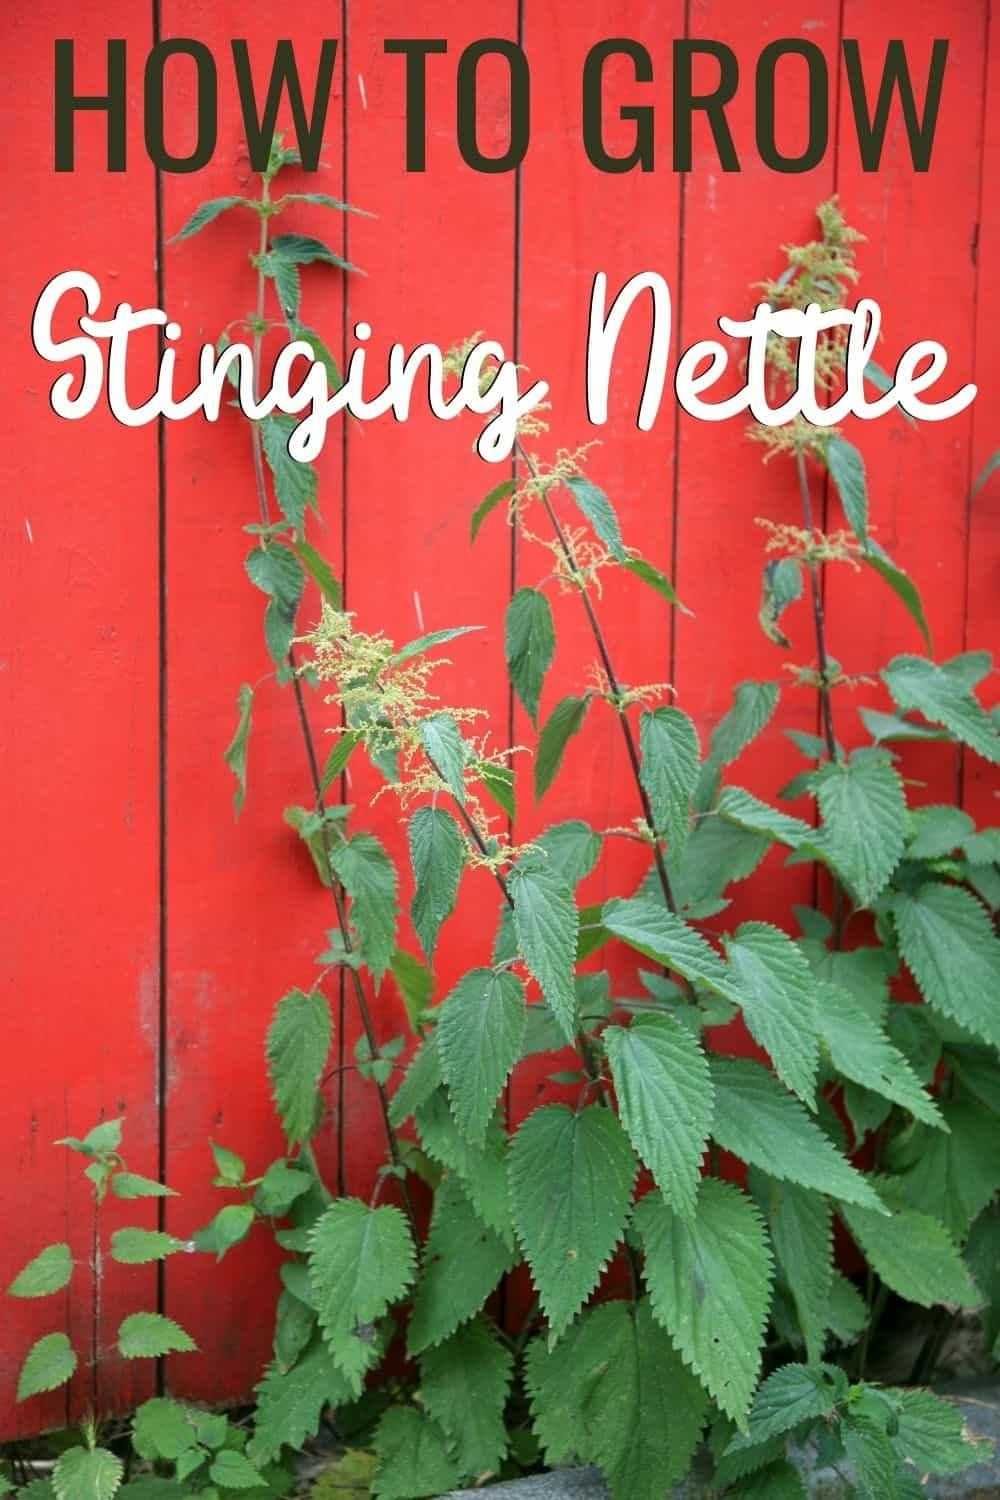 How to grow stinging nettle